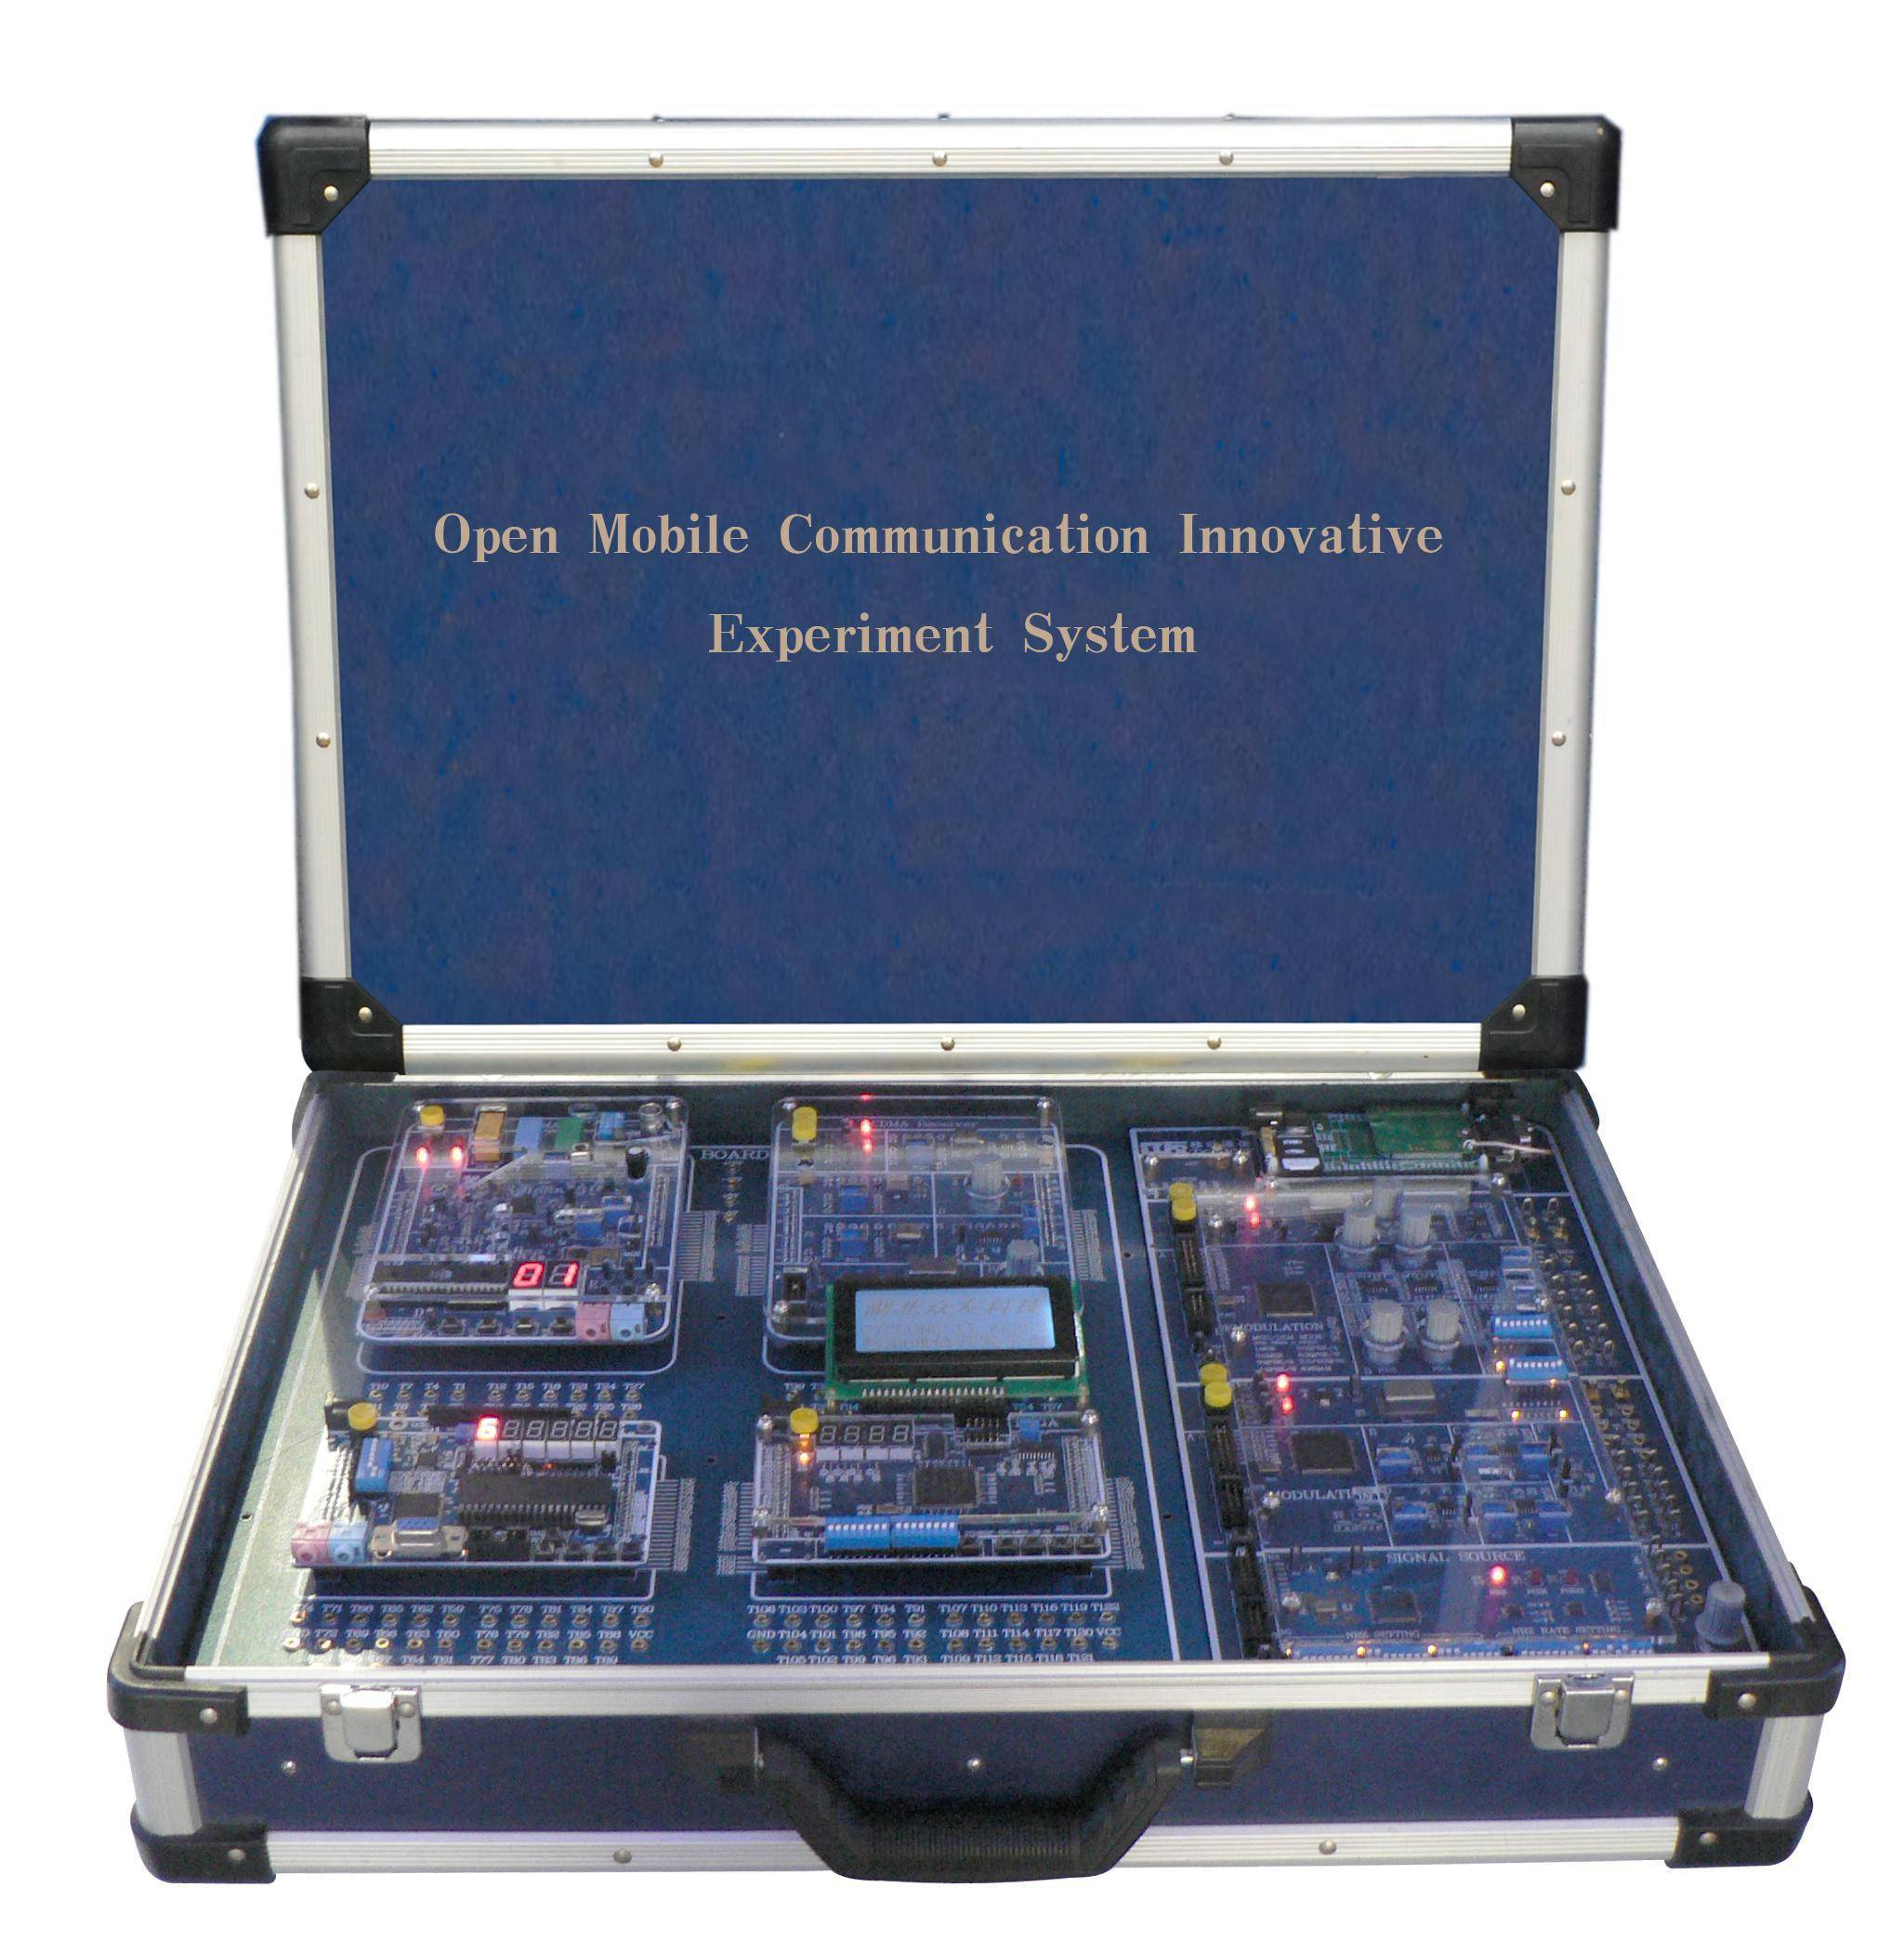 ES0407F Open Mobile Communication Innovative Experiment System